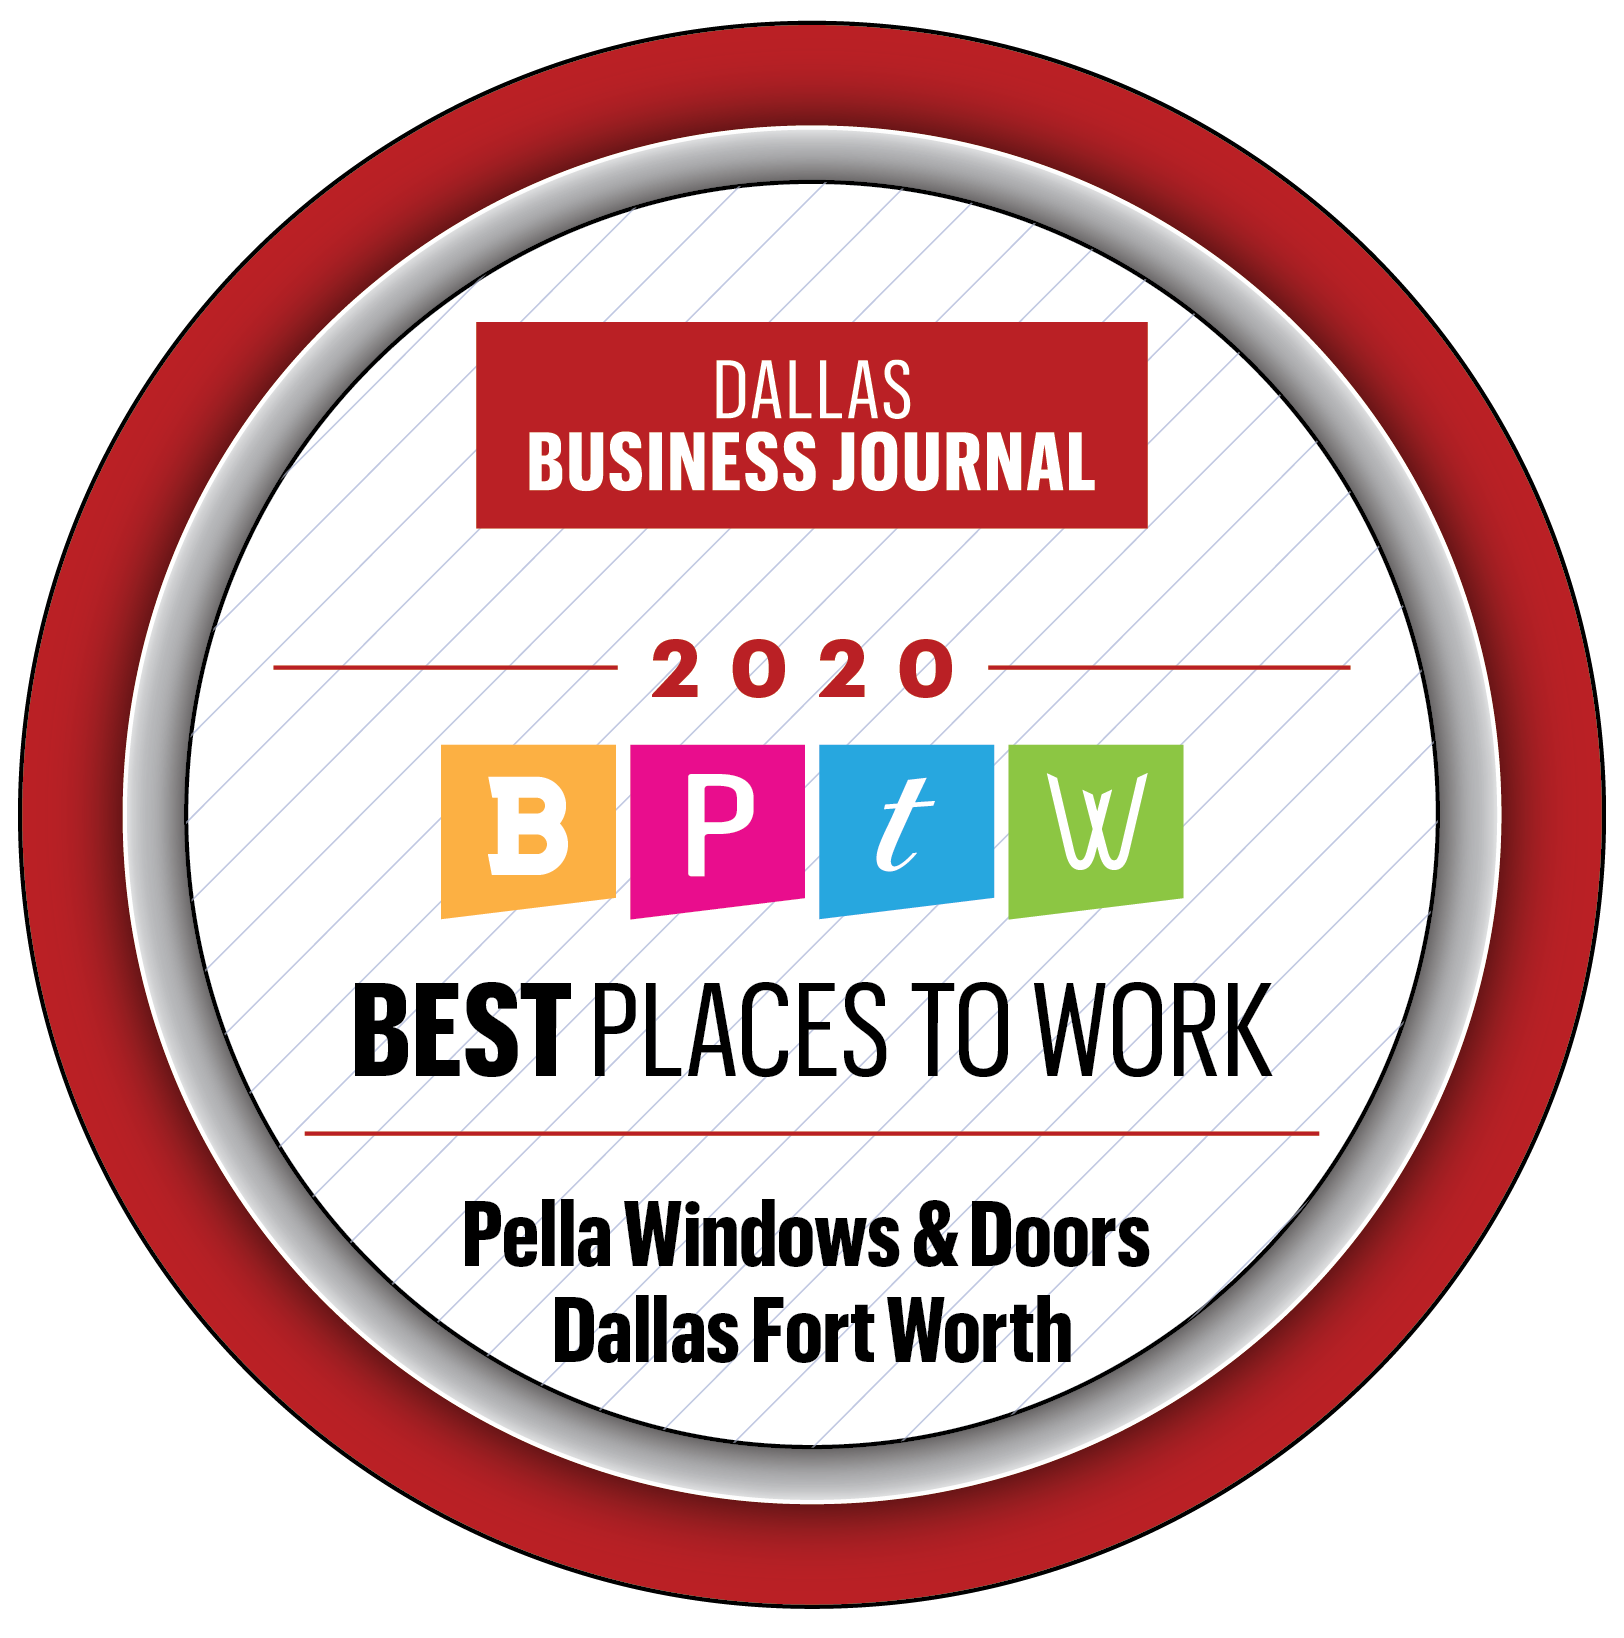 Dallas Business Journal 2020 Best Places To Work